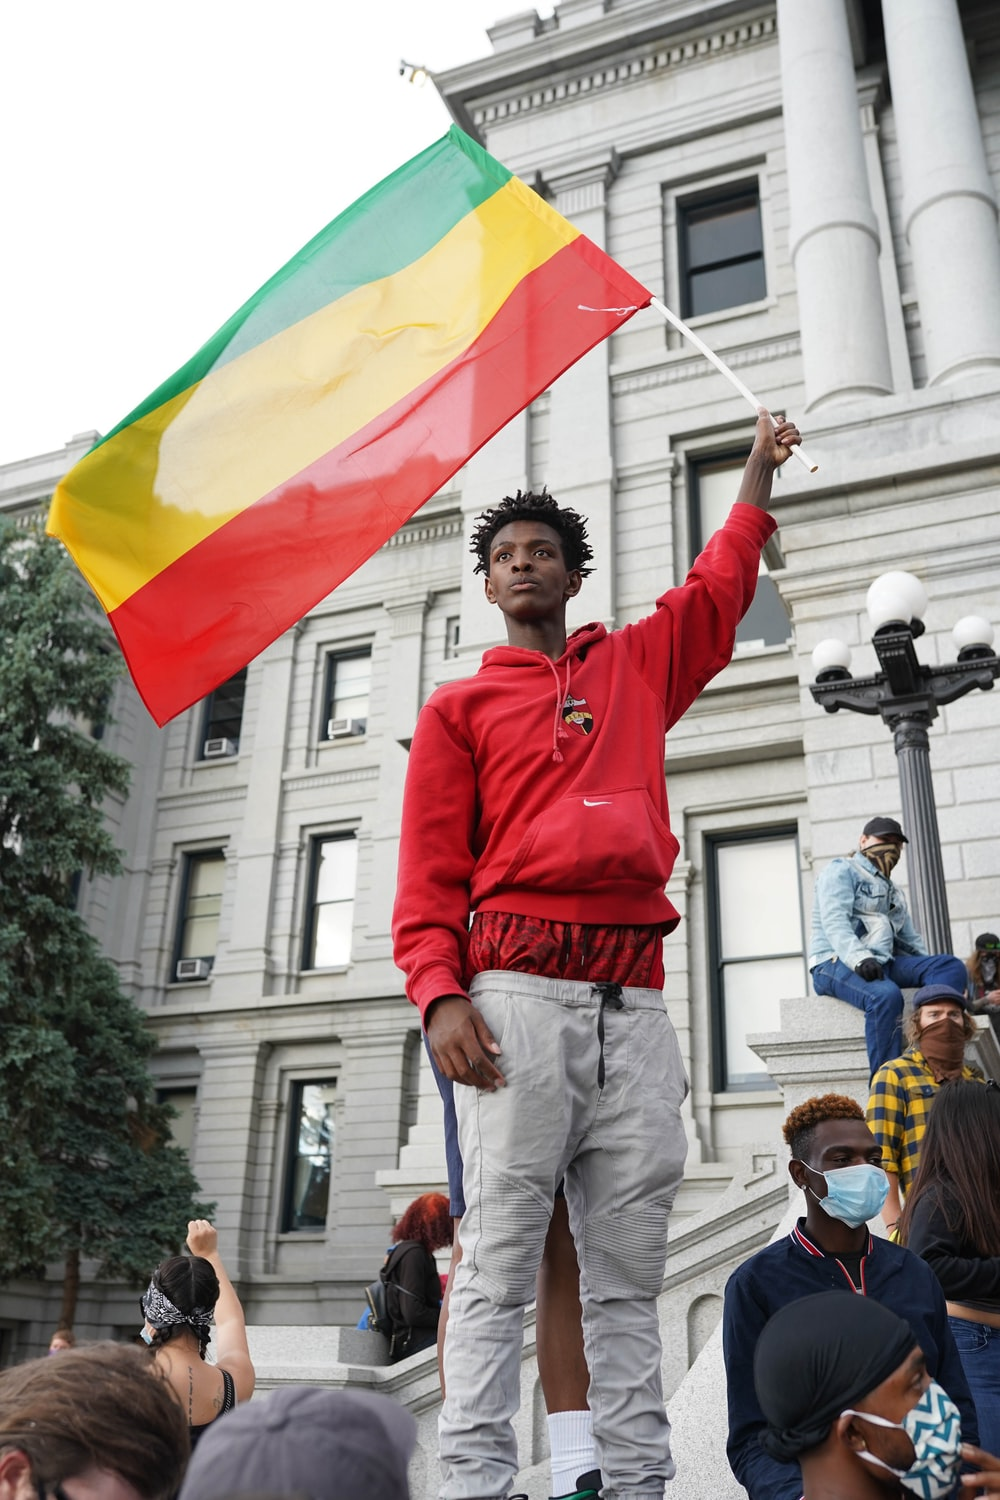 man in red long sleeve shirt holding yellow and red flag